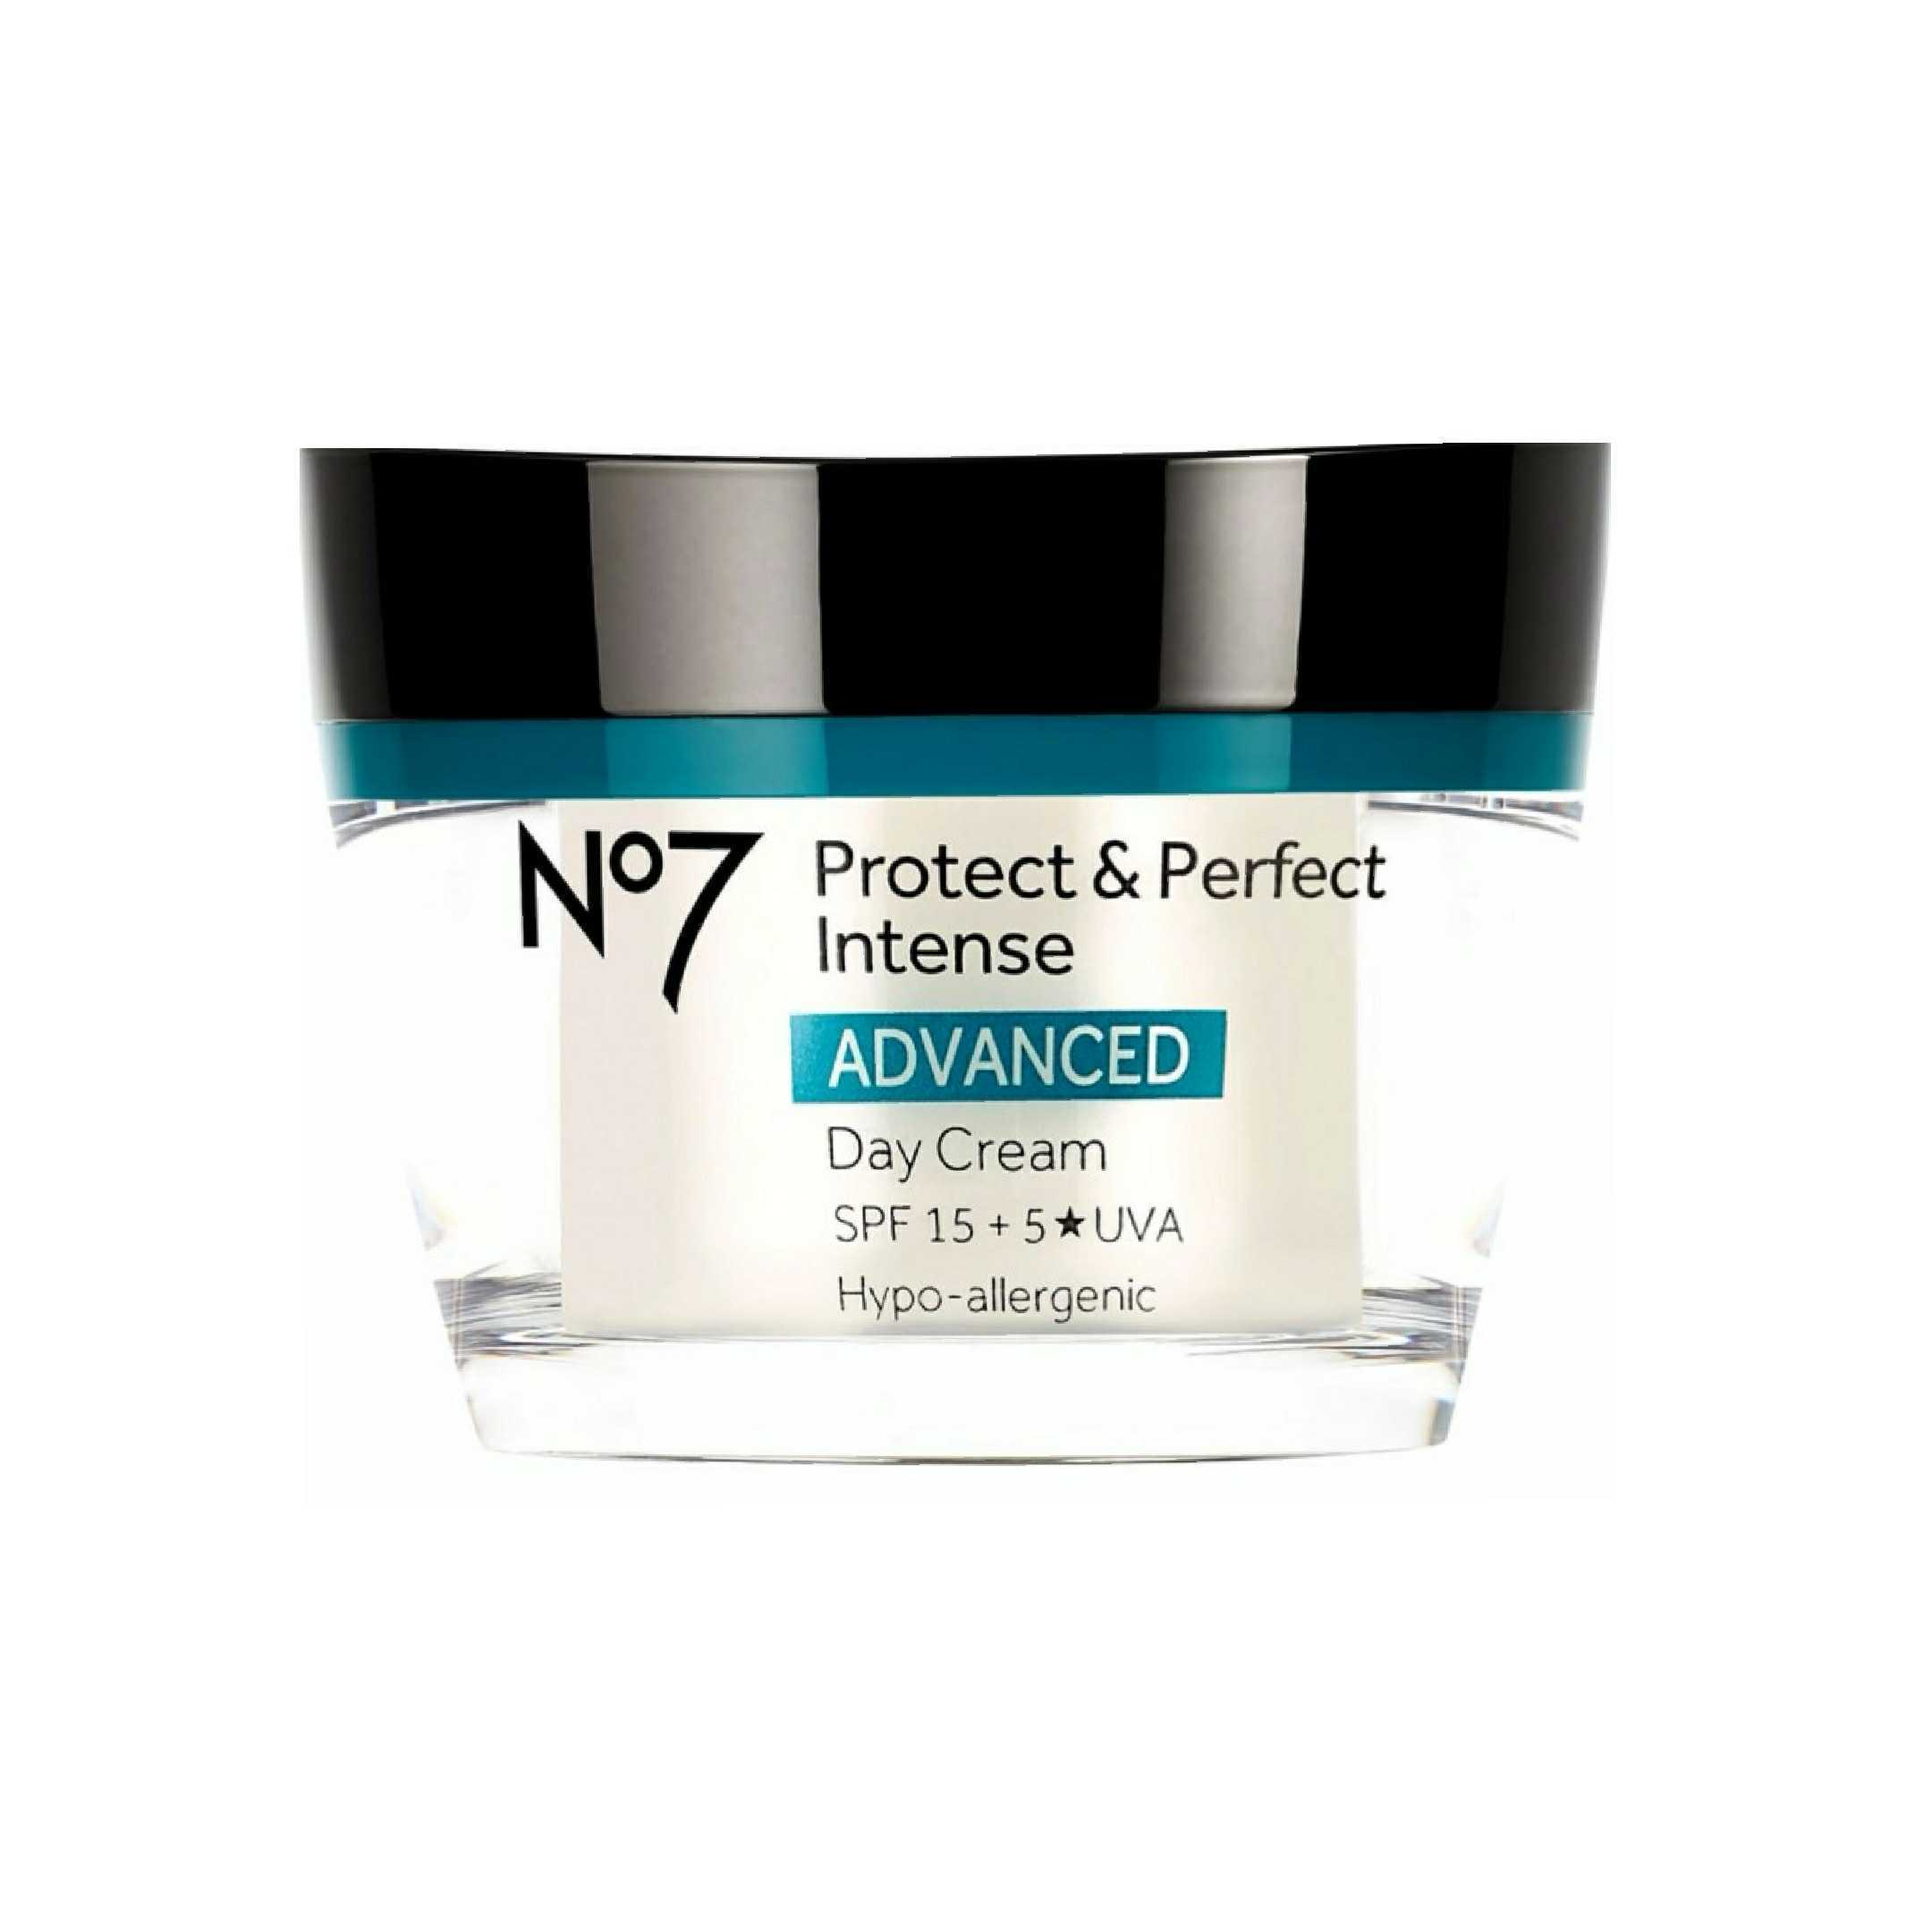 ★Boots★No7 Protect & Perfect Intense ADVANCED 昼用クリーム